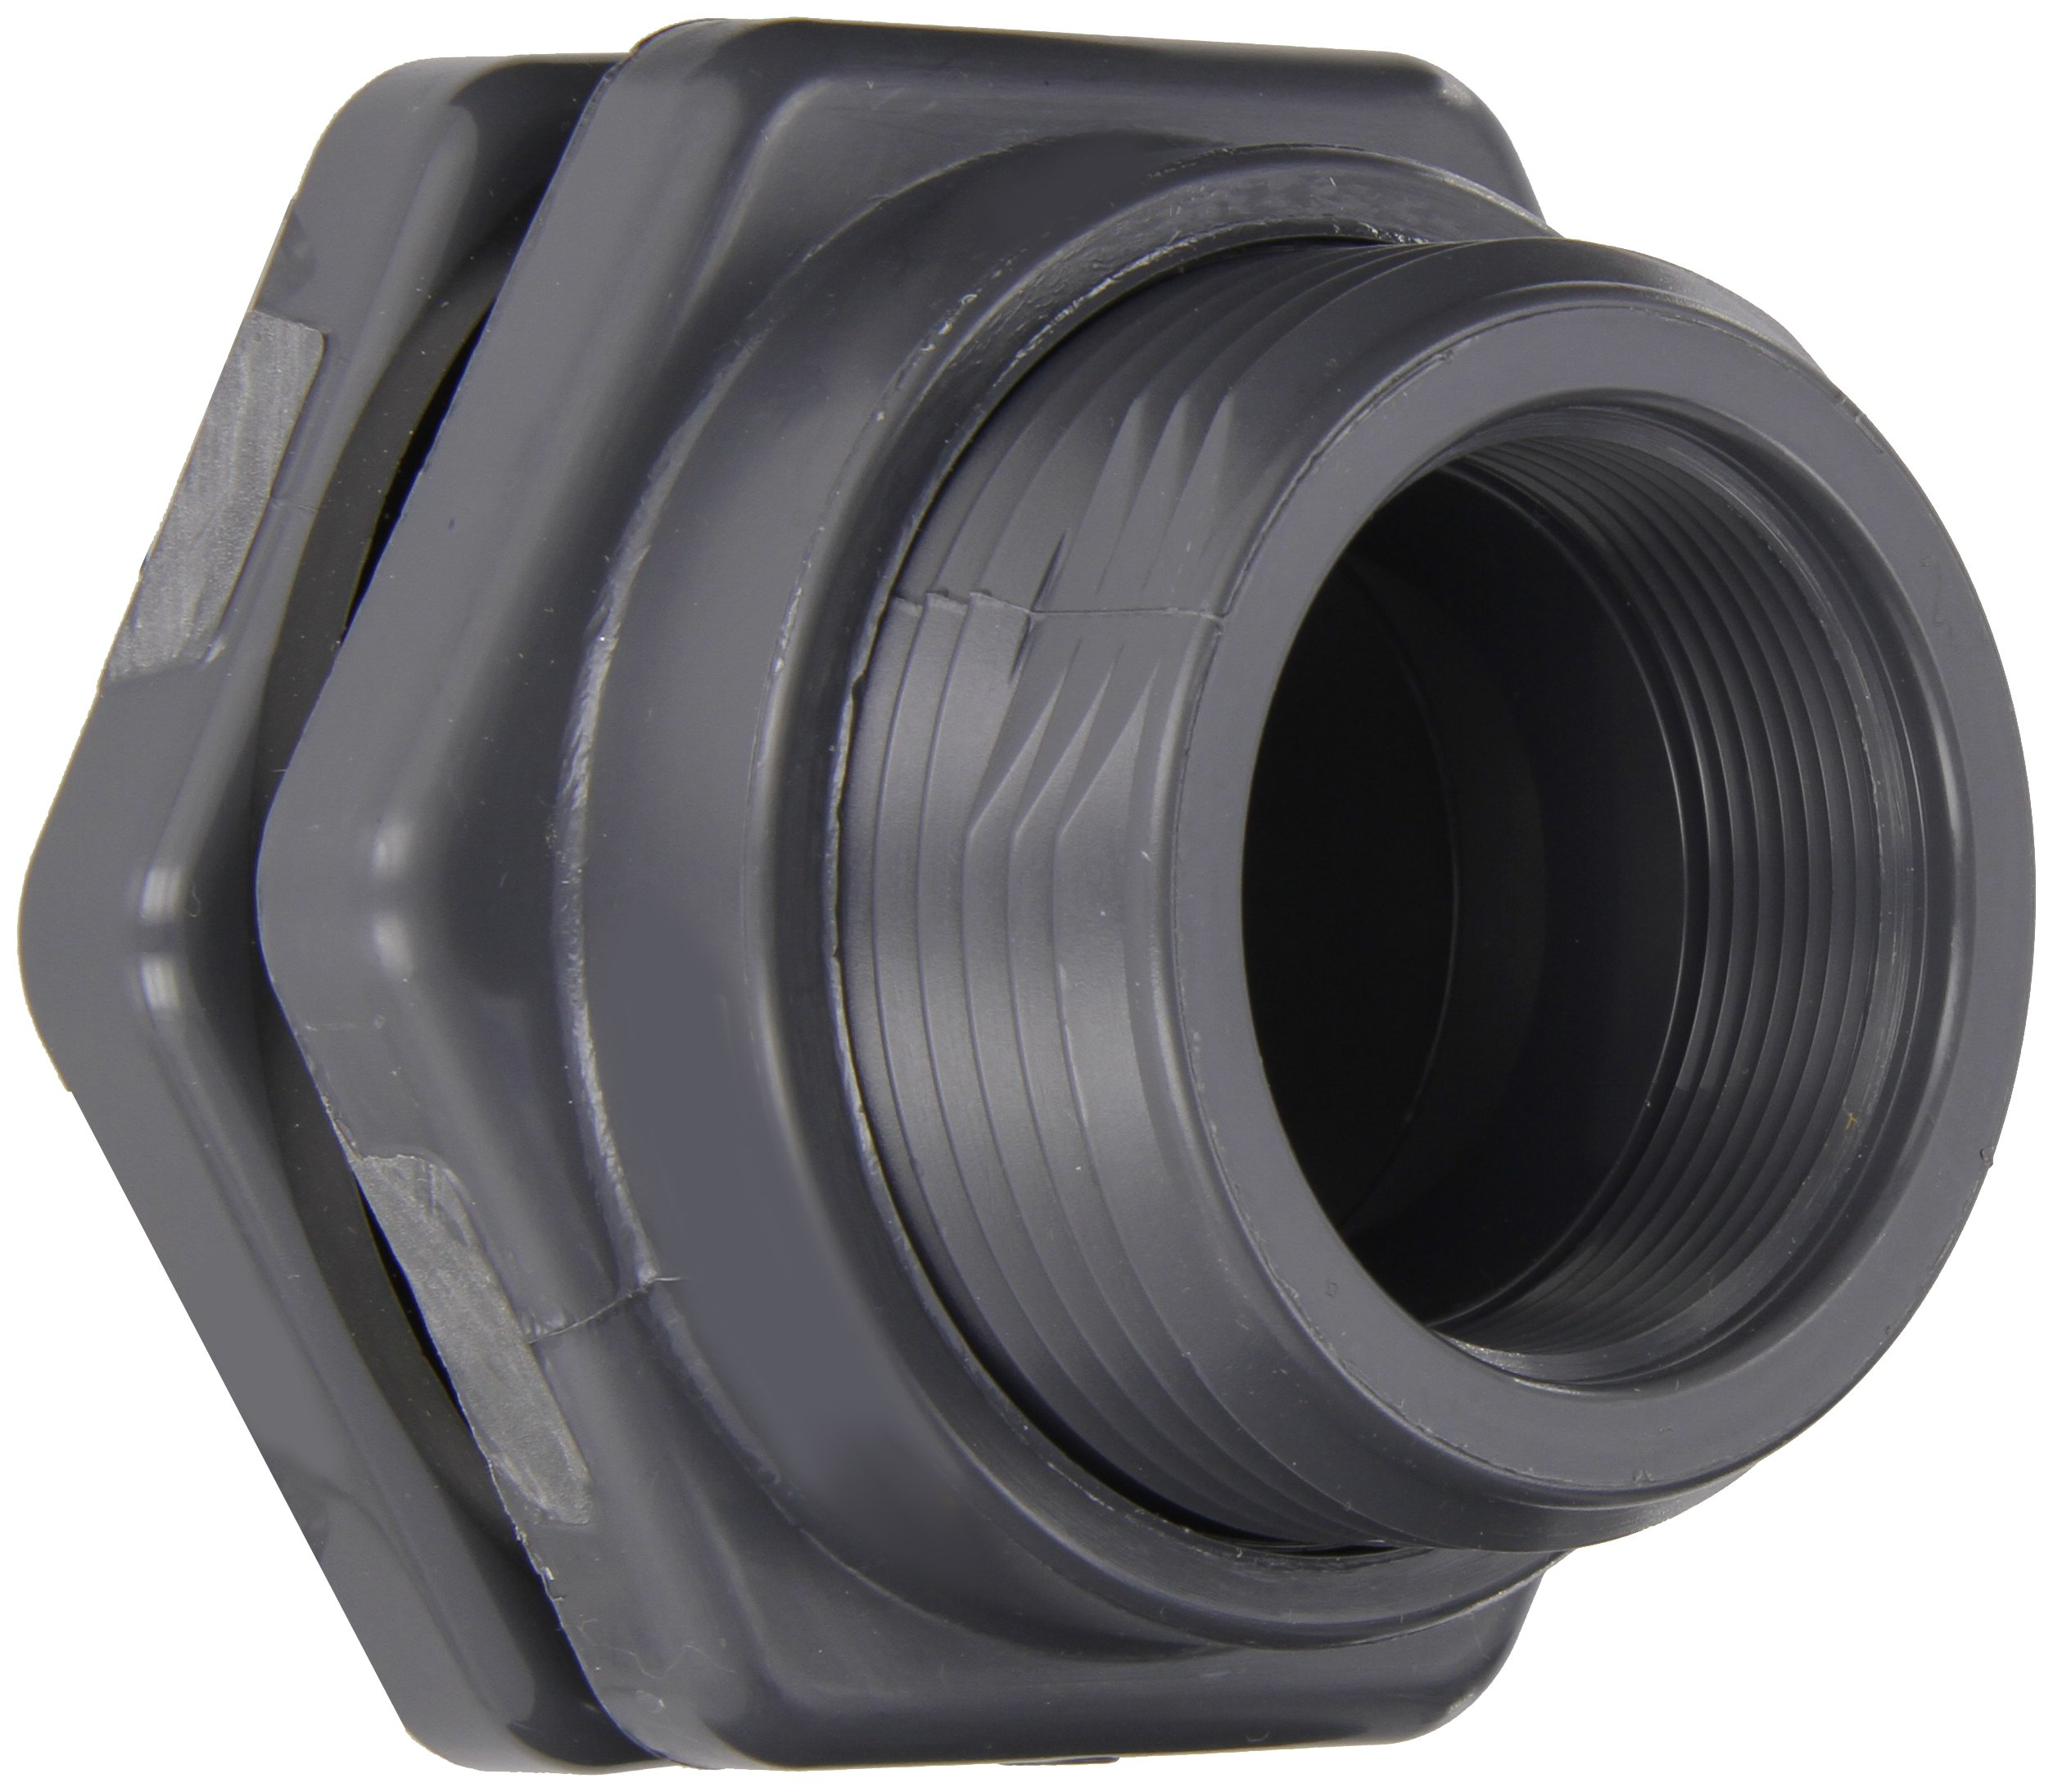 Hayward BFAS1020CES Series BFAS Short Pattern Bulkhead Fitting, Socket x Threaded End, PVC with EPDM Seals, 2'' Size